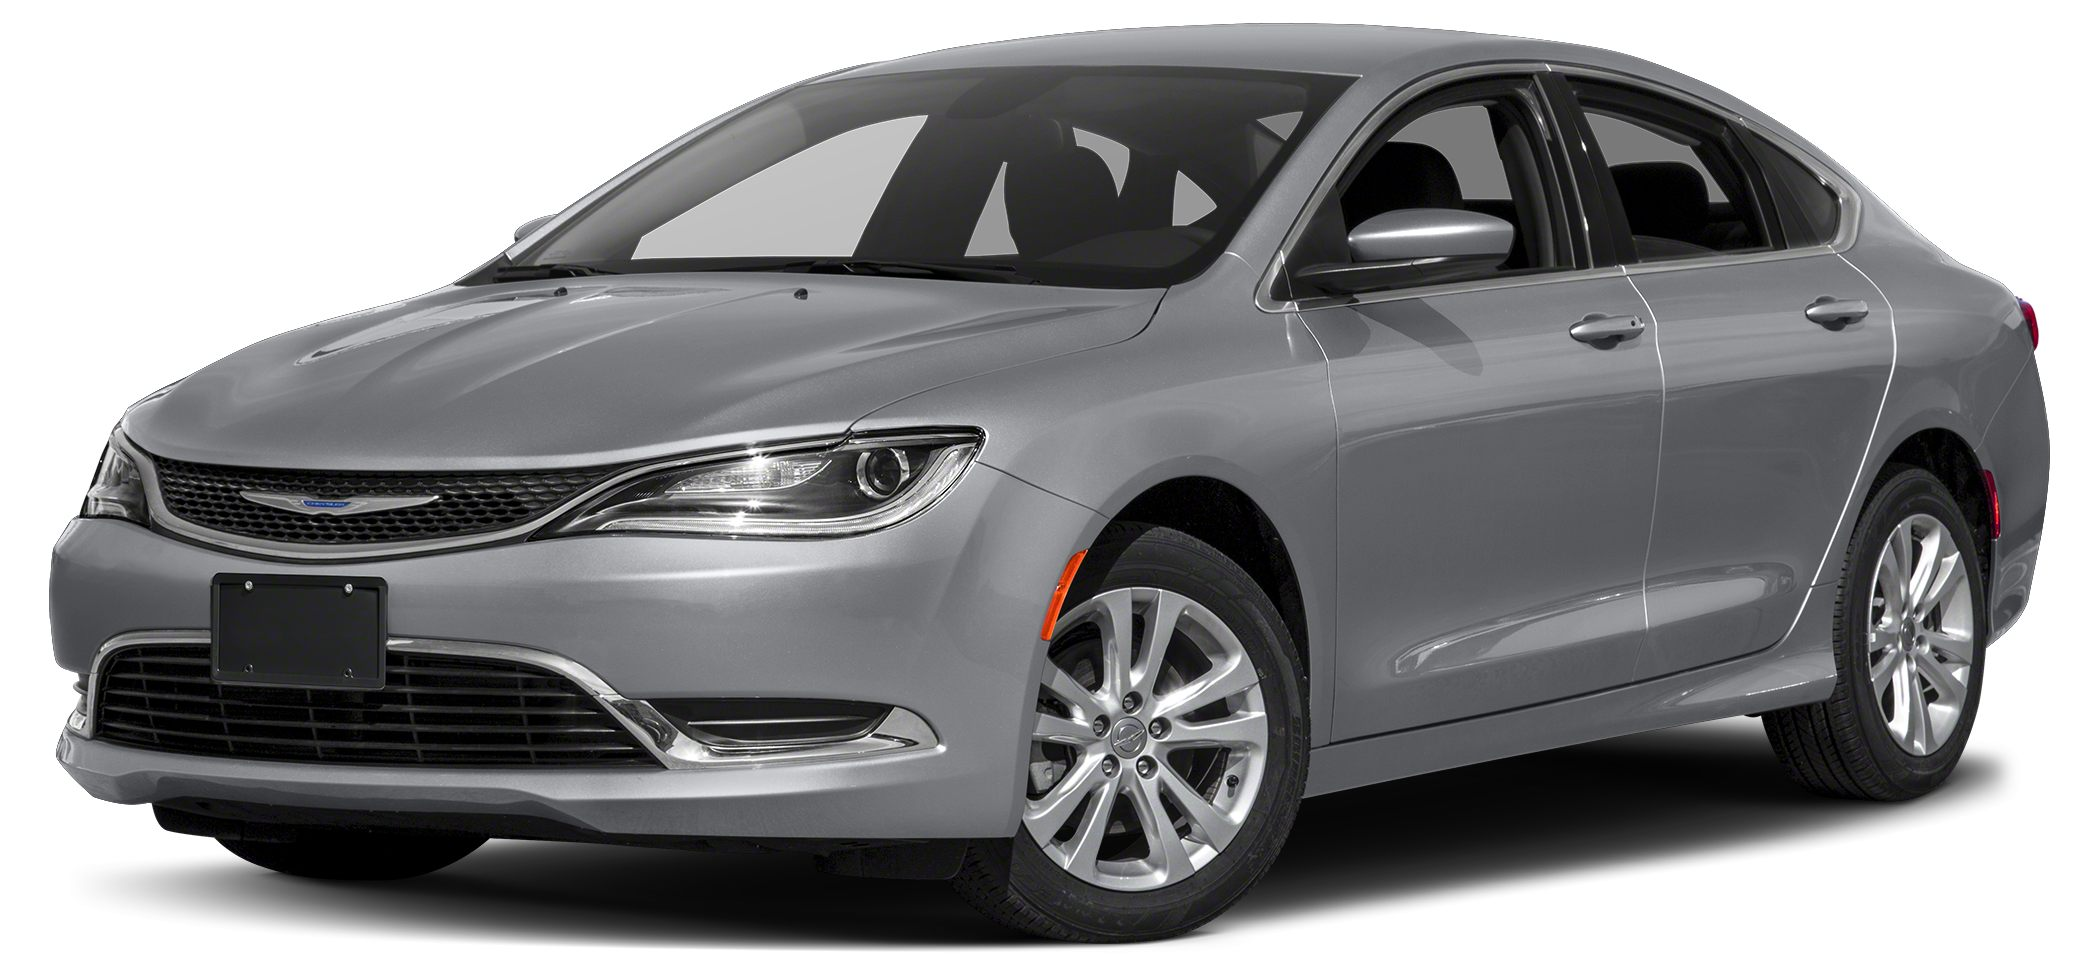 2015 Chrysler 200 Limited Miles 26342Color Billet Silver Clearcoat Metallic Stock K15404A VIN